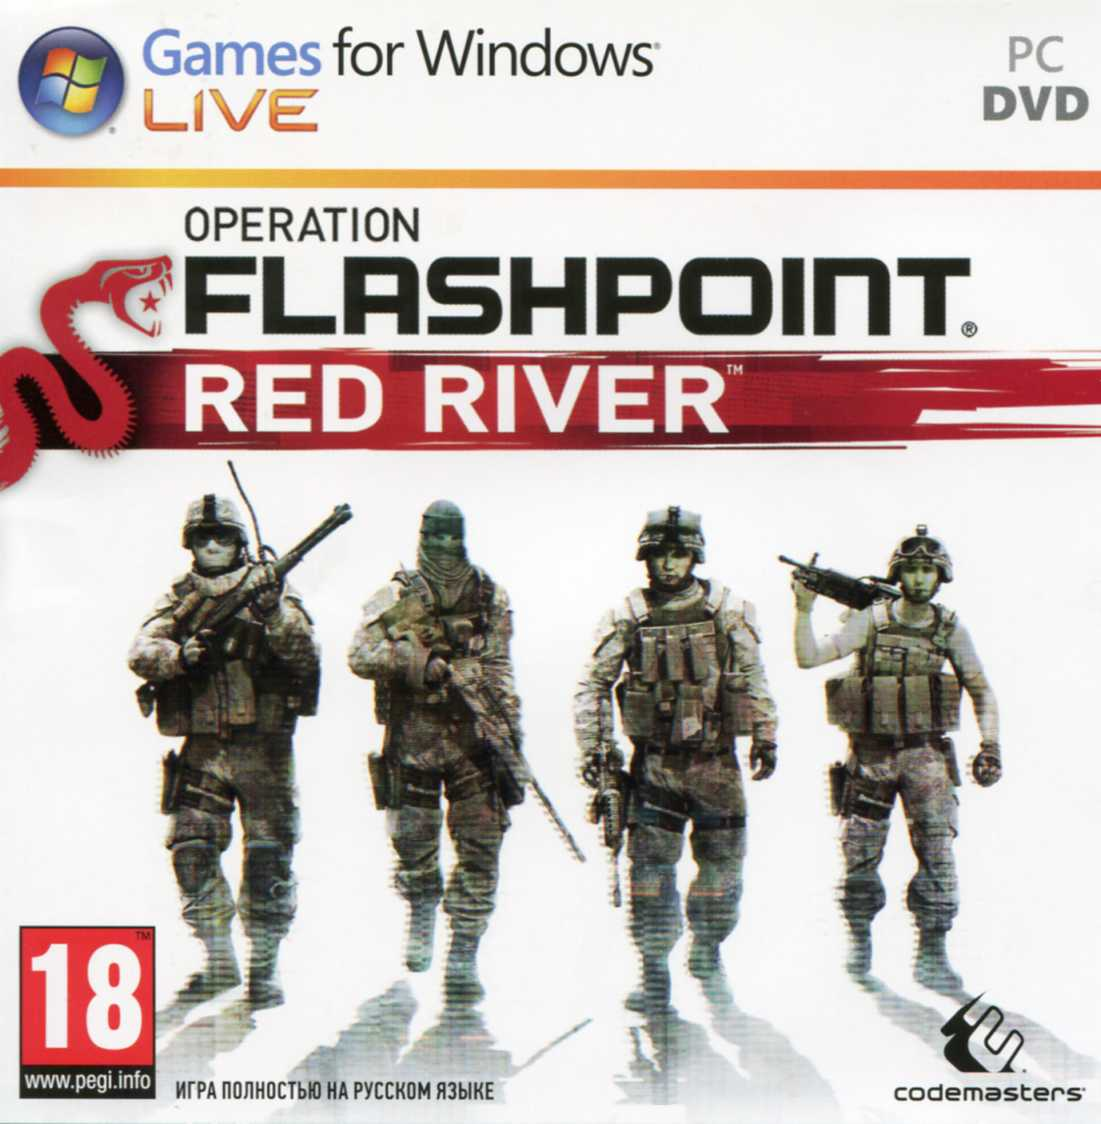 Operation Flashpoint: Red River (Key for GFWL)